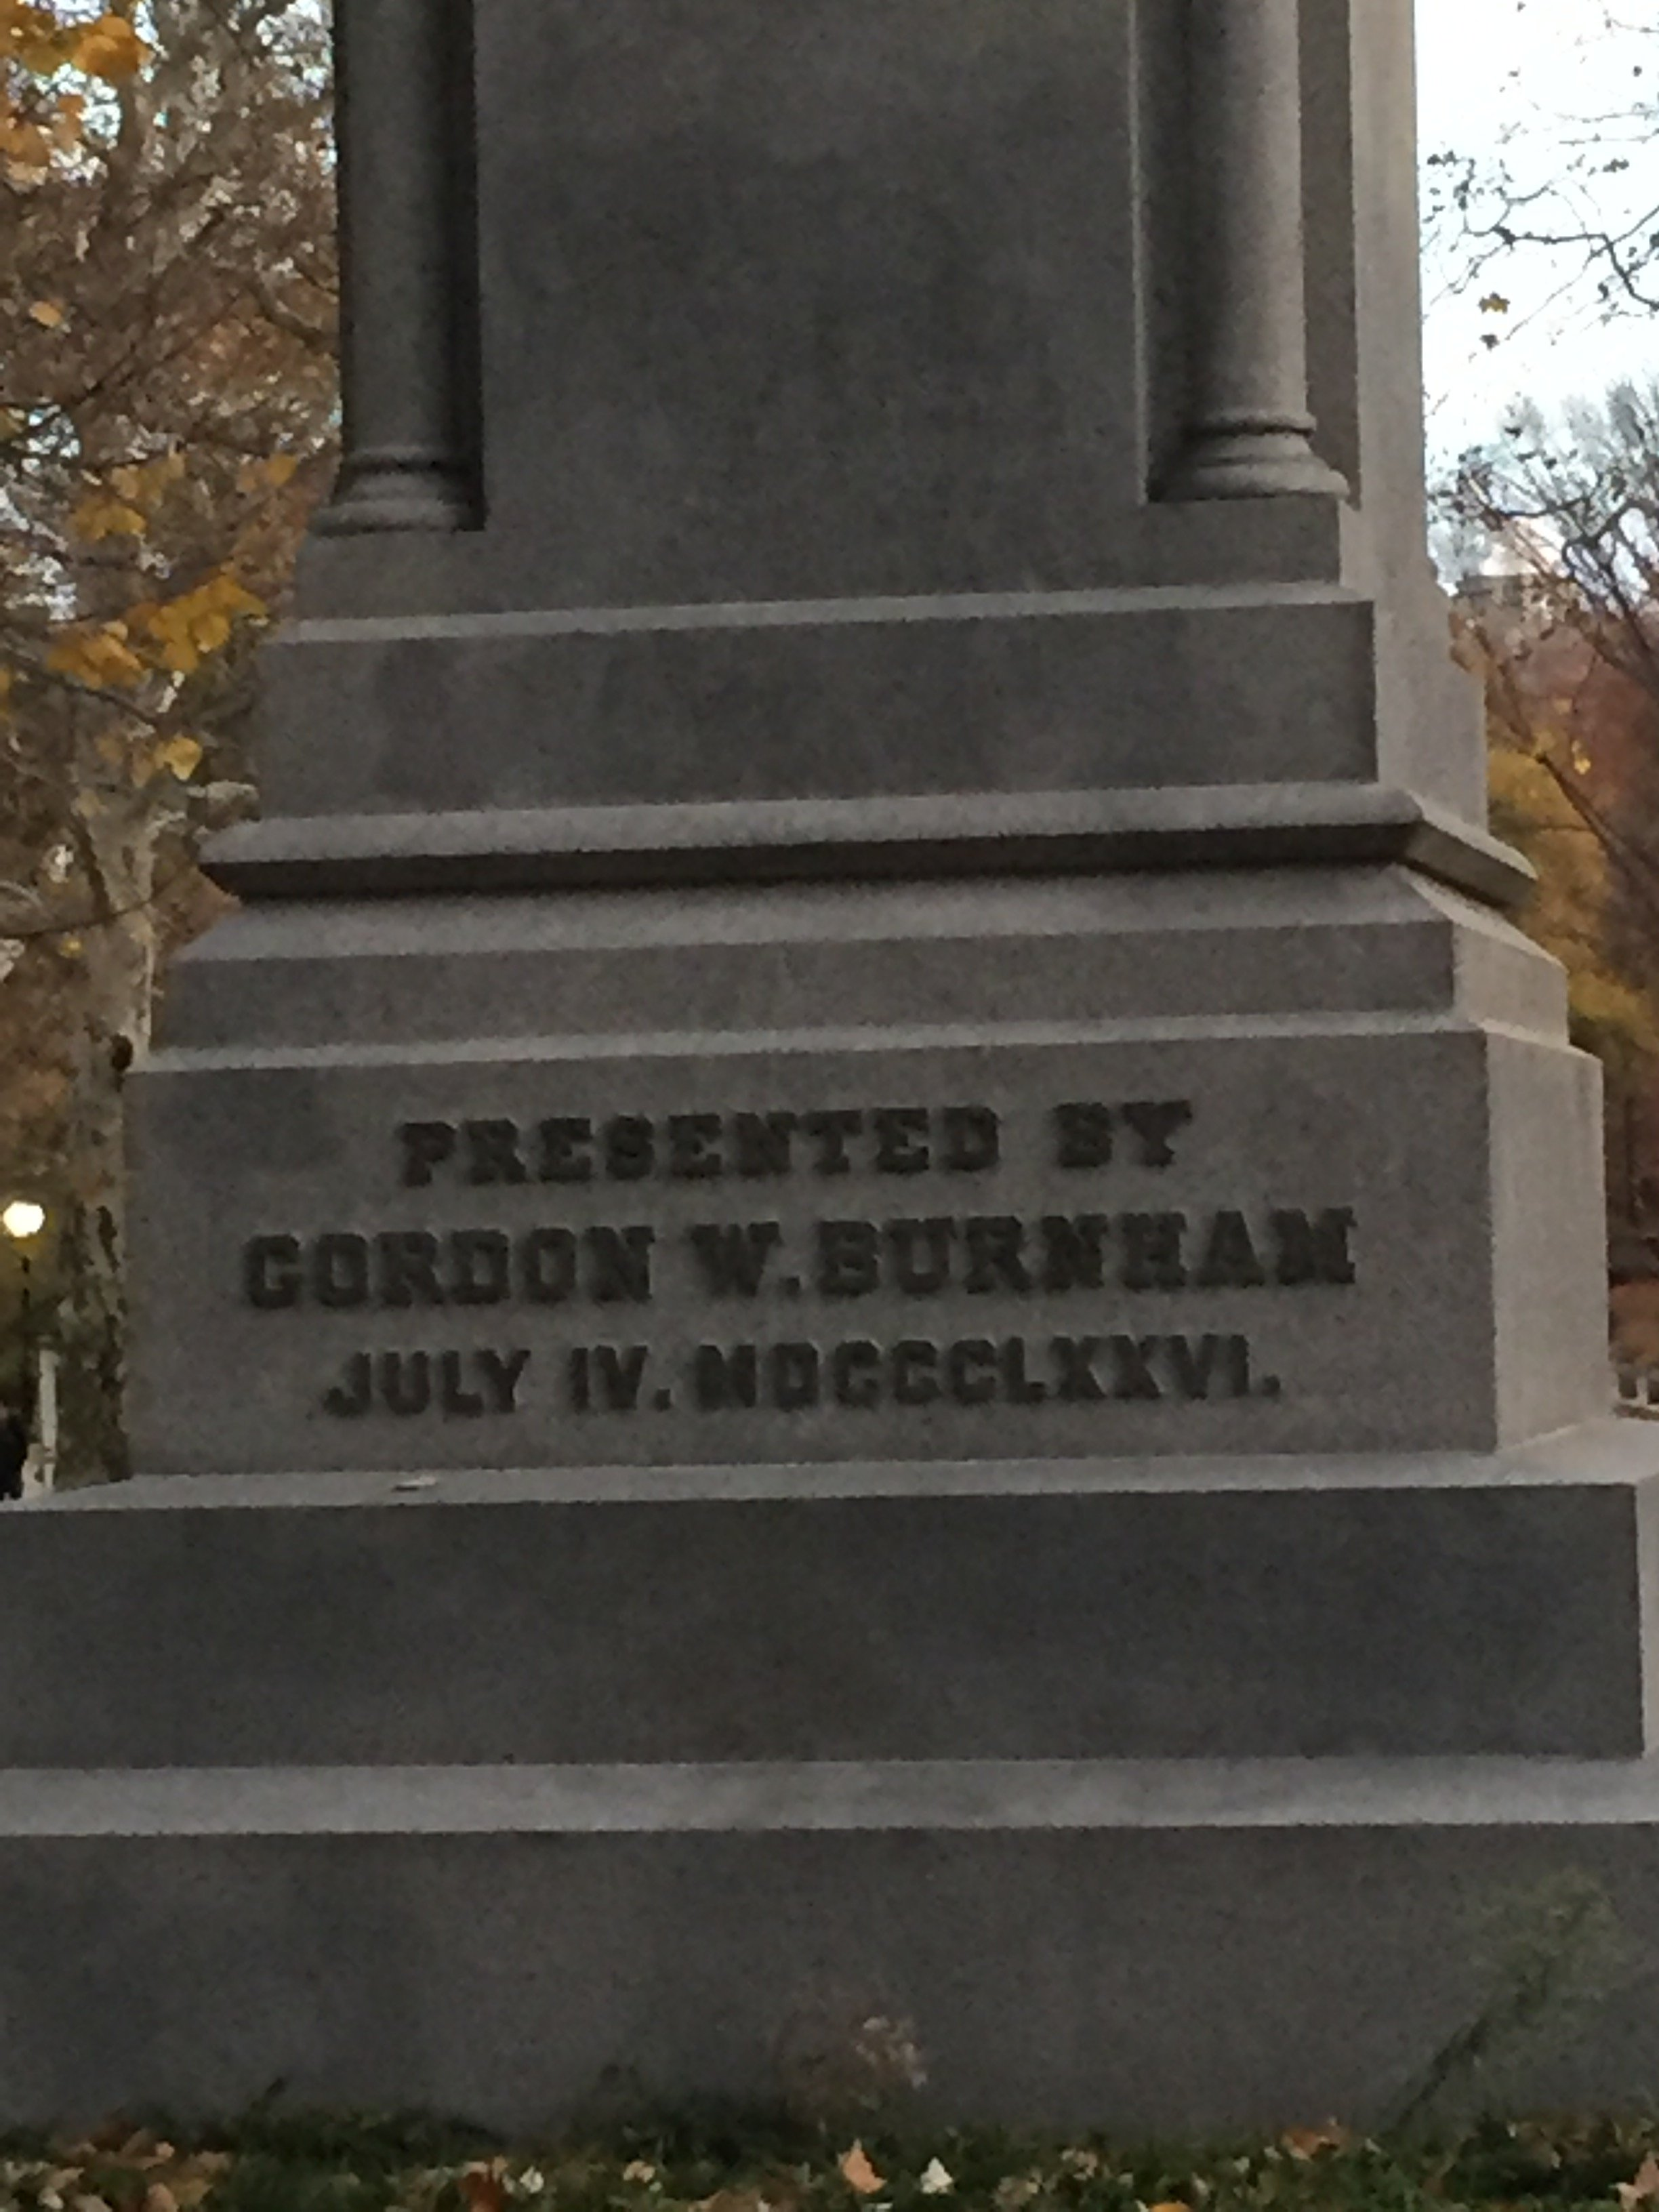 Text on back of monument